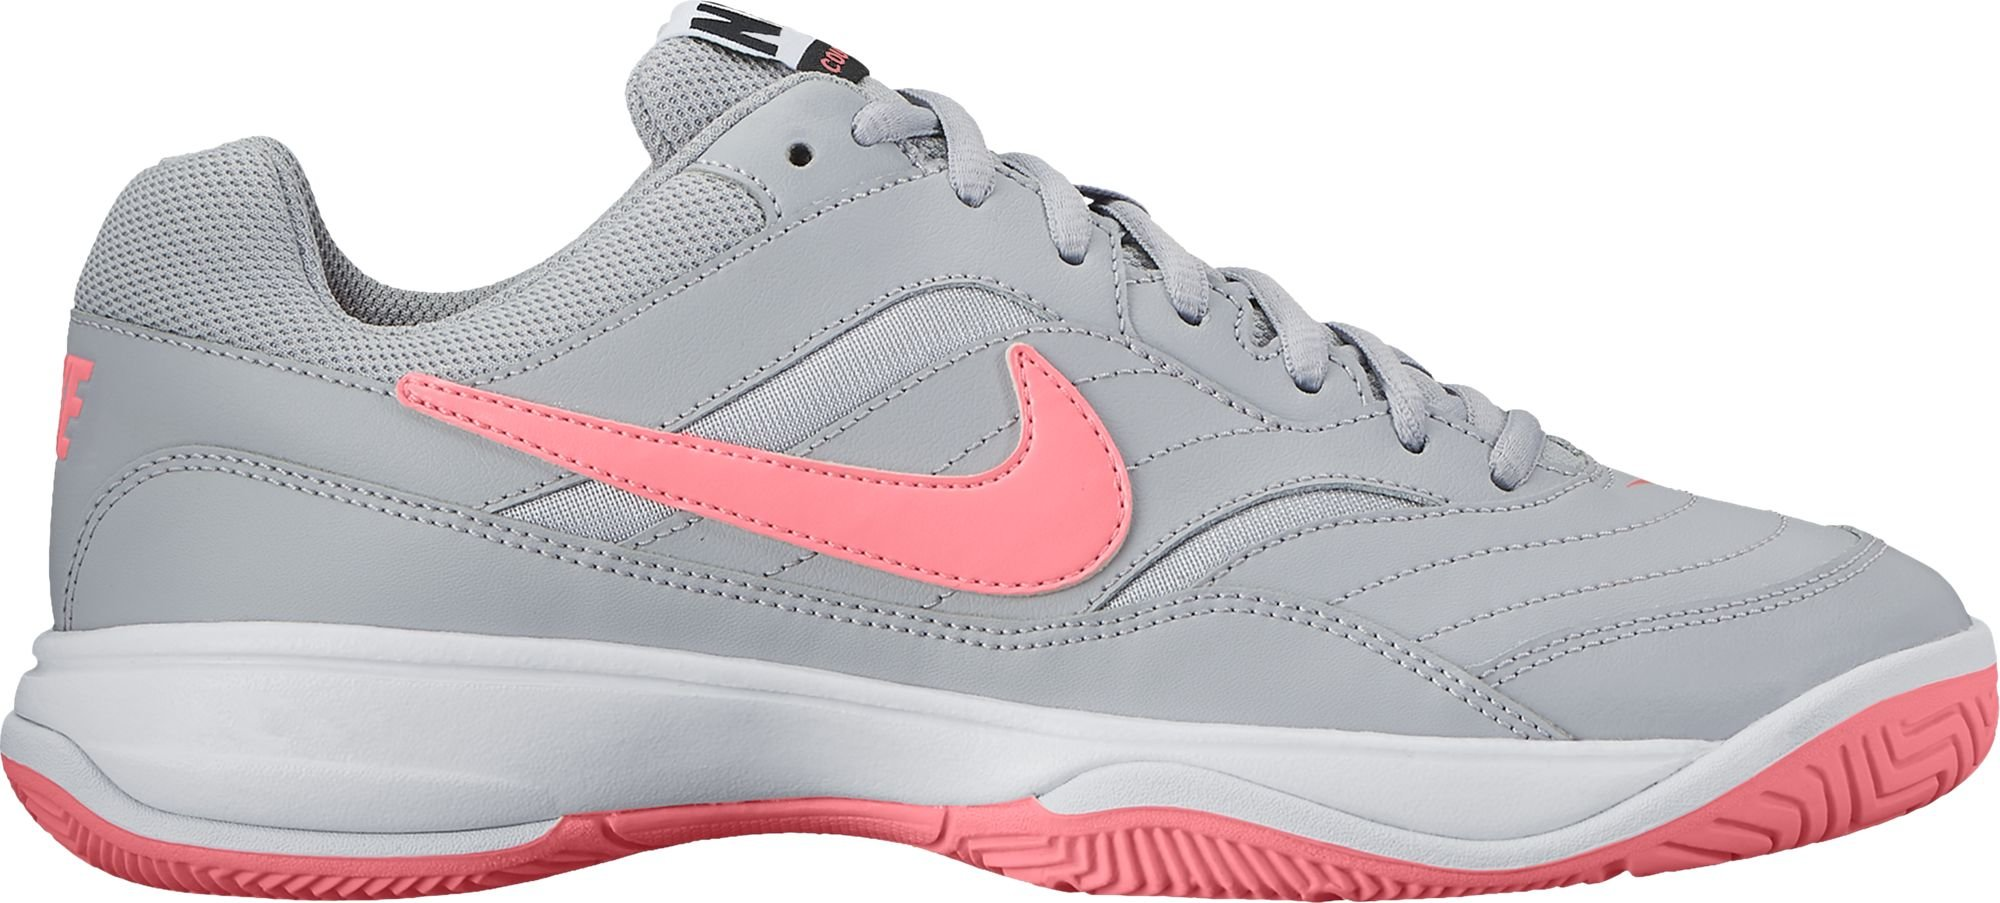 7dd1631a Galleon - NIKE Women's Court Lite Tennis Shoes (11, Grey/Pink)